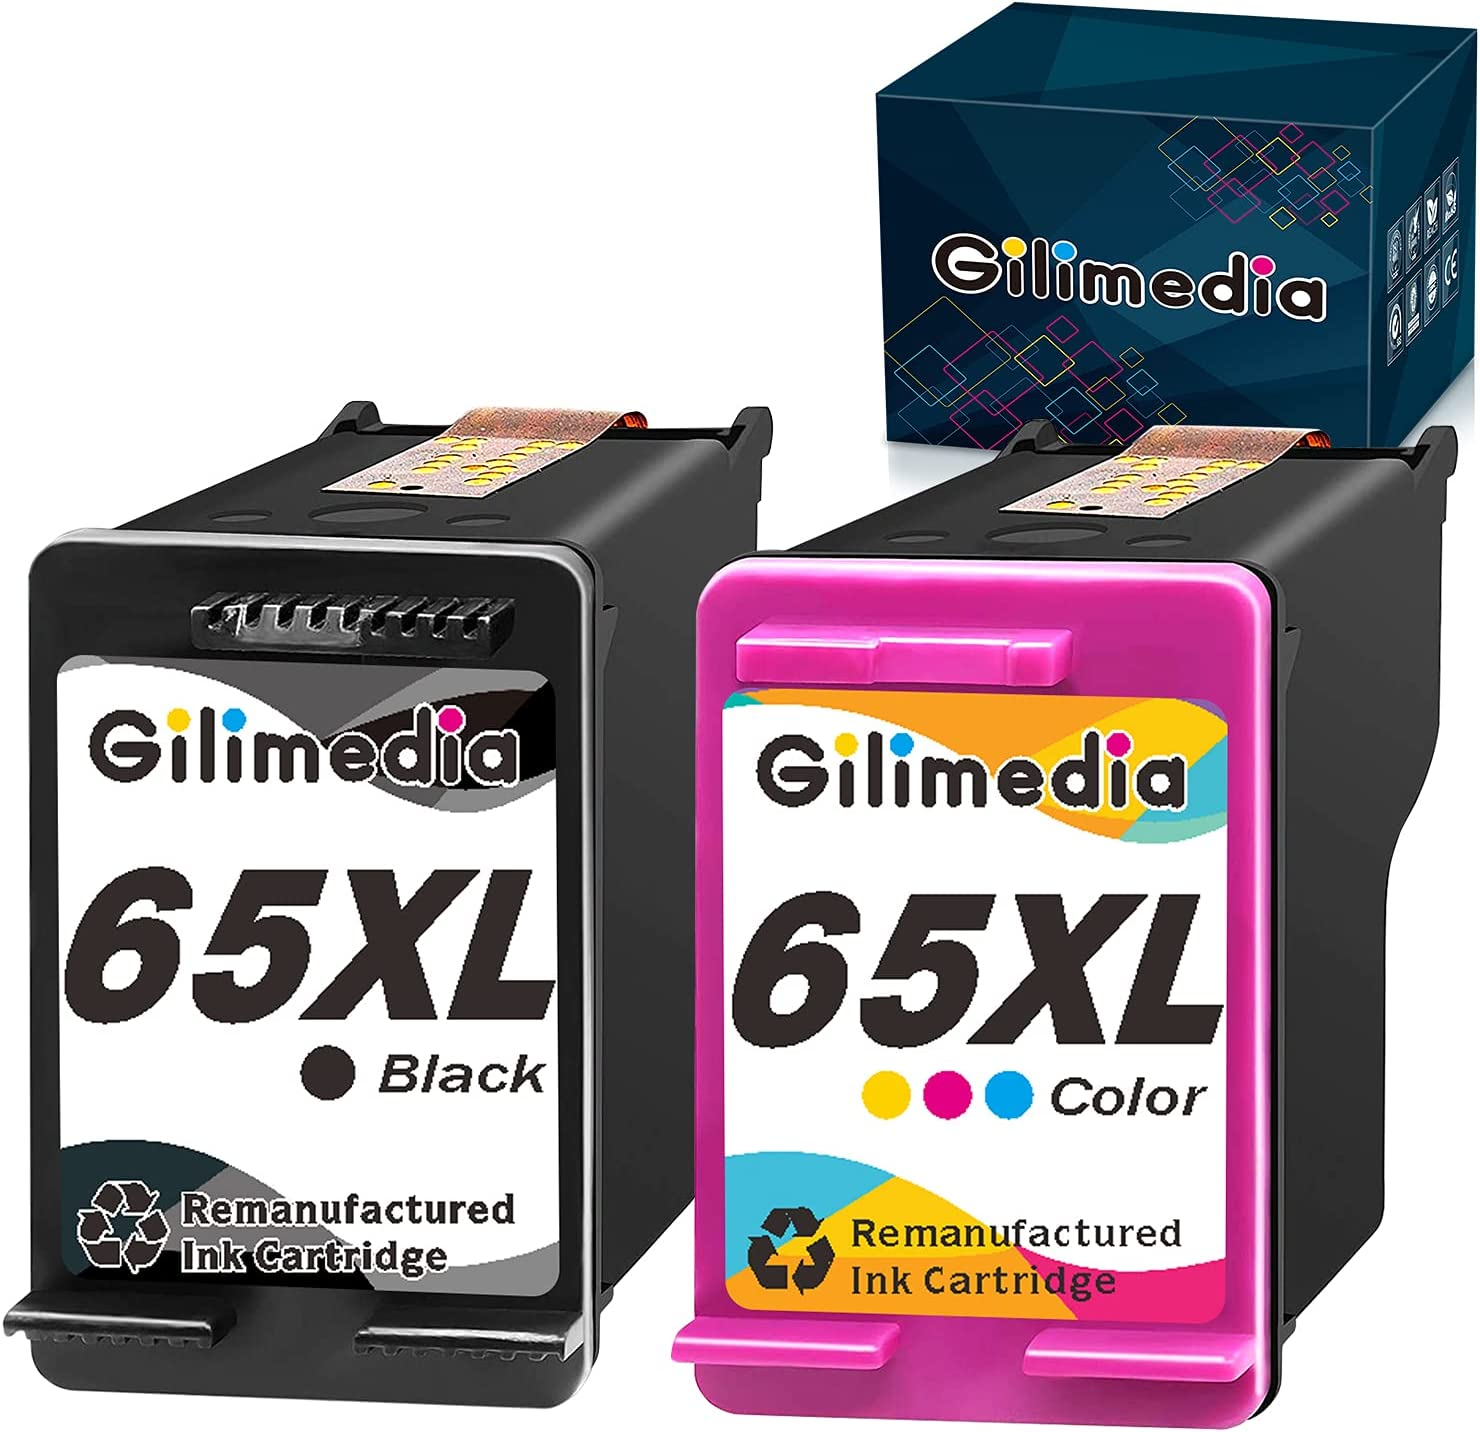 Gilimedia Remanufactured Ink Cartridges HP Max 87% OFF for 65XL Replacement Now on sale